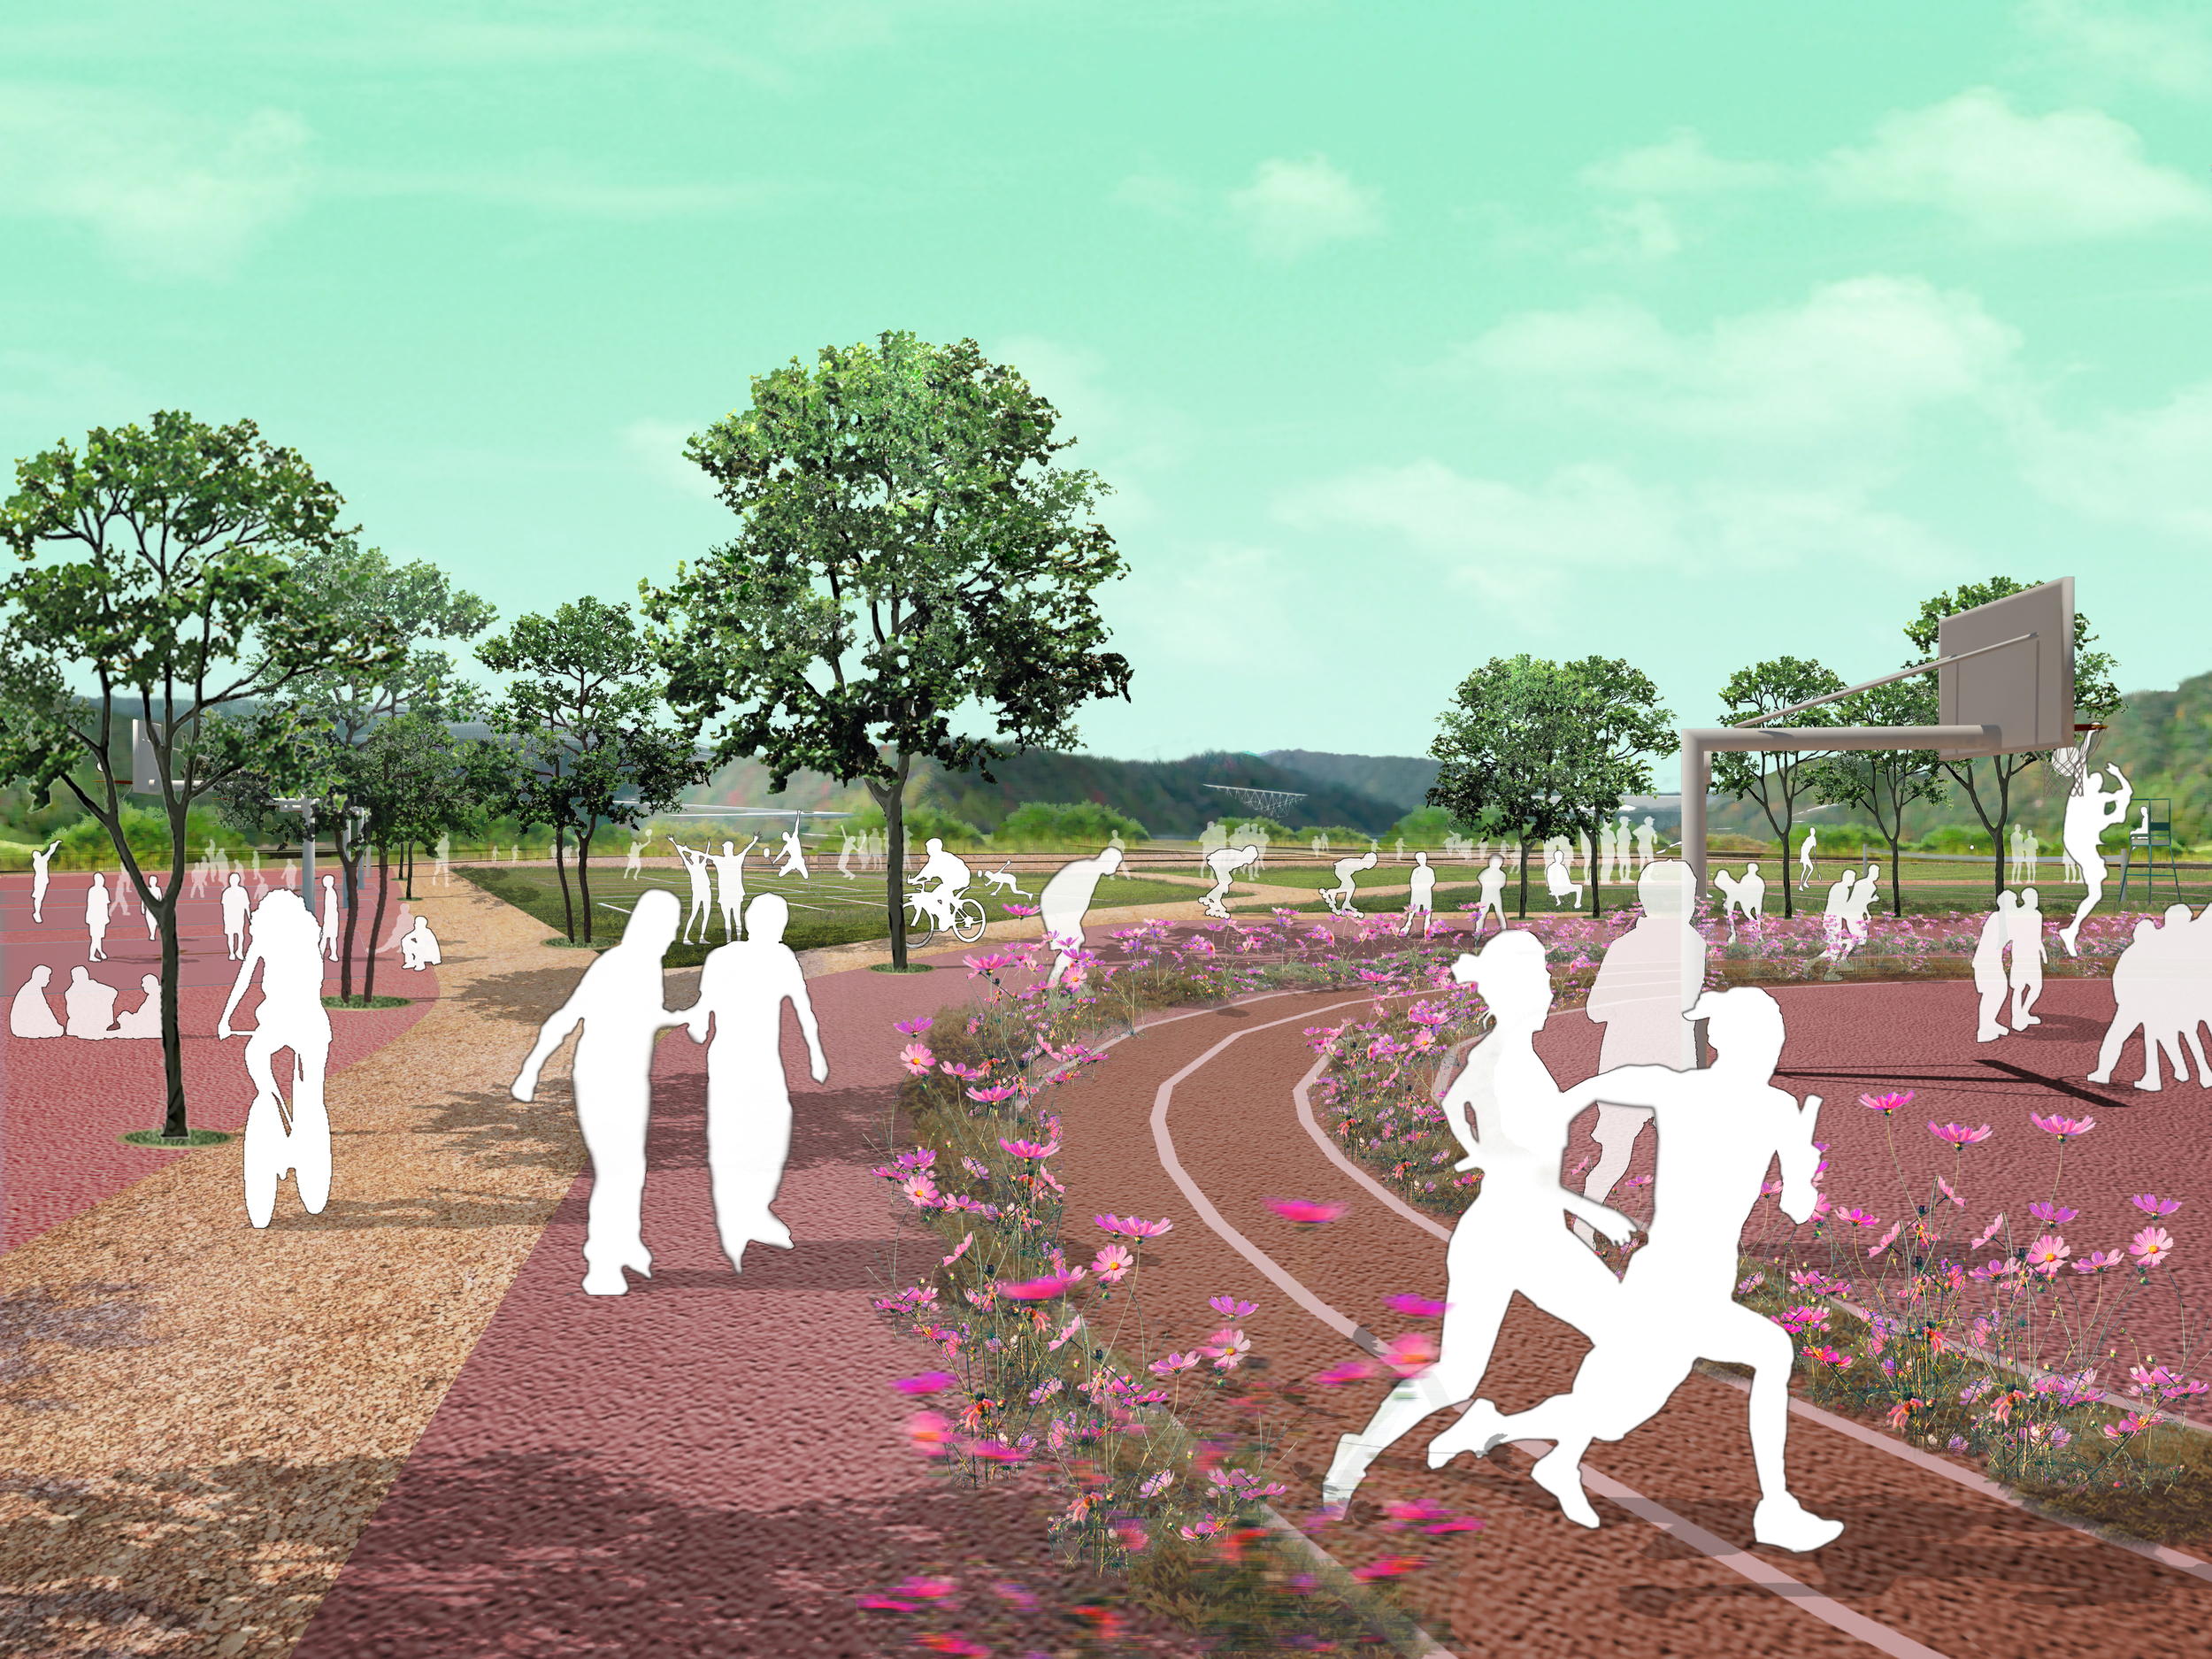 BA_Two Lakes Park_Gwanggyo Trail_render4.jpg